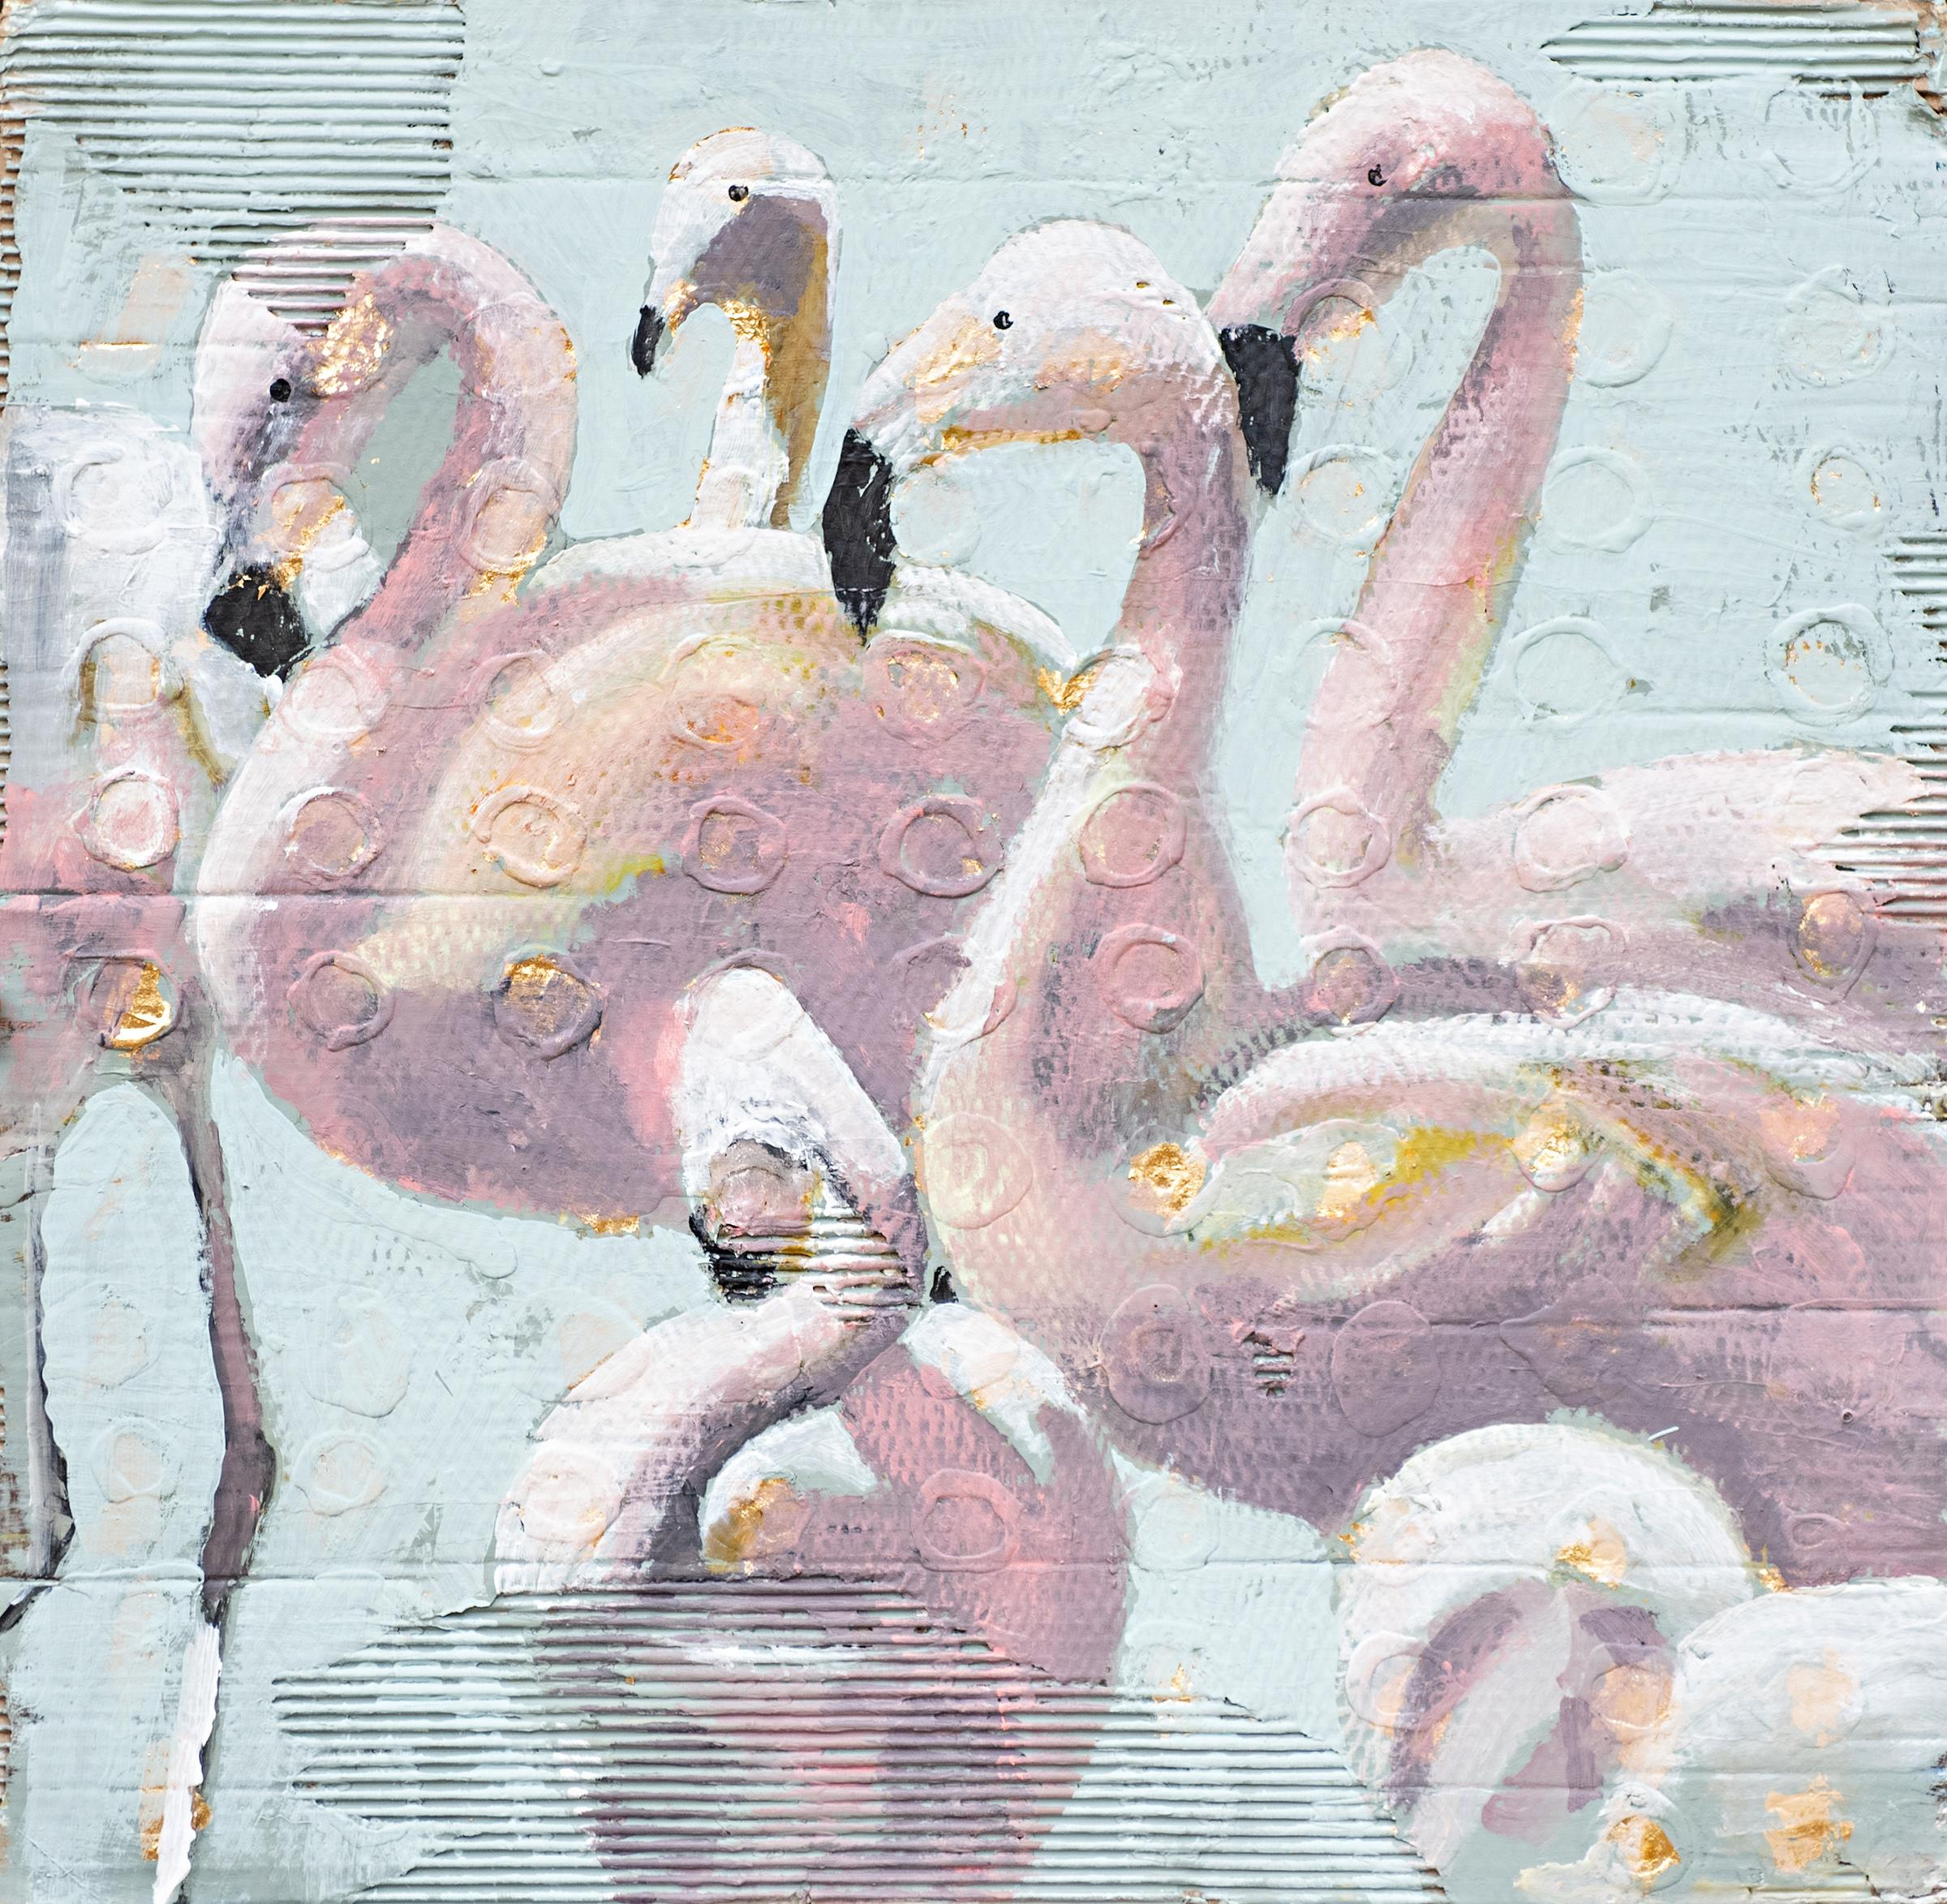 More Please by Carylon Killebrew, Square Flamingo Framed Painting on Cardboard